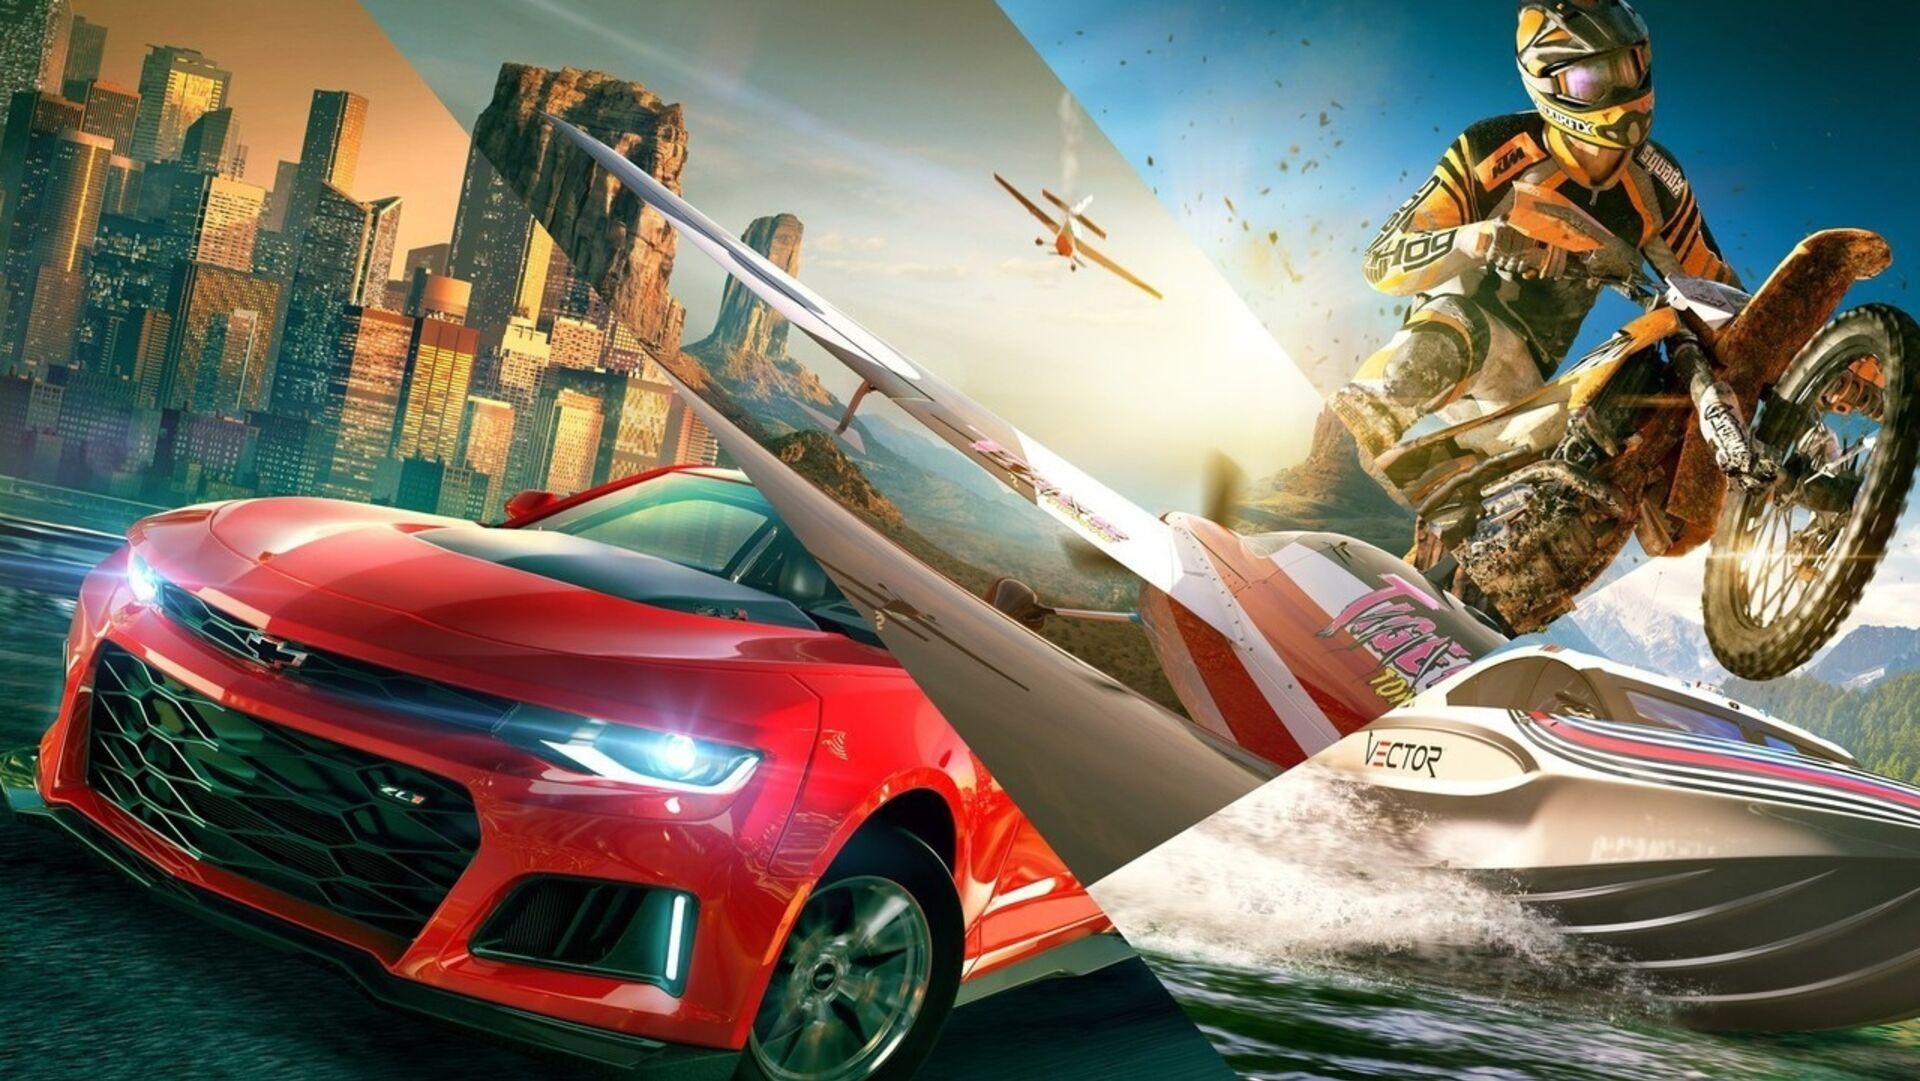 The Crew 2 takes Forza Horizon's concept and ramps up the